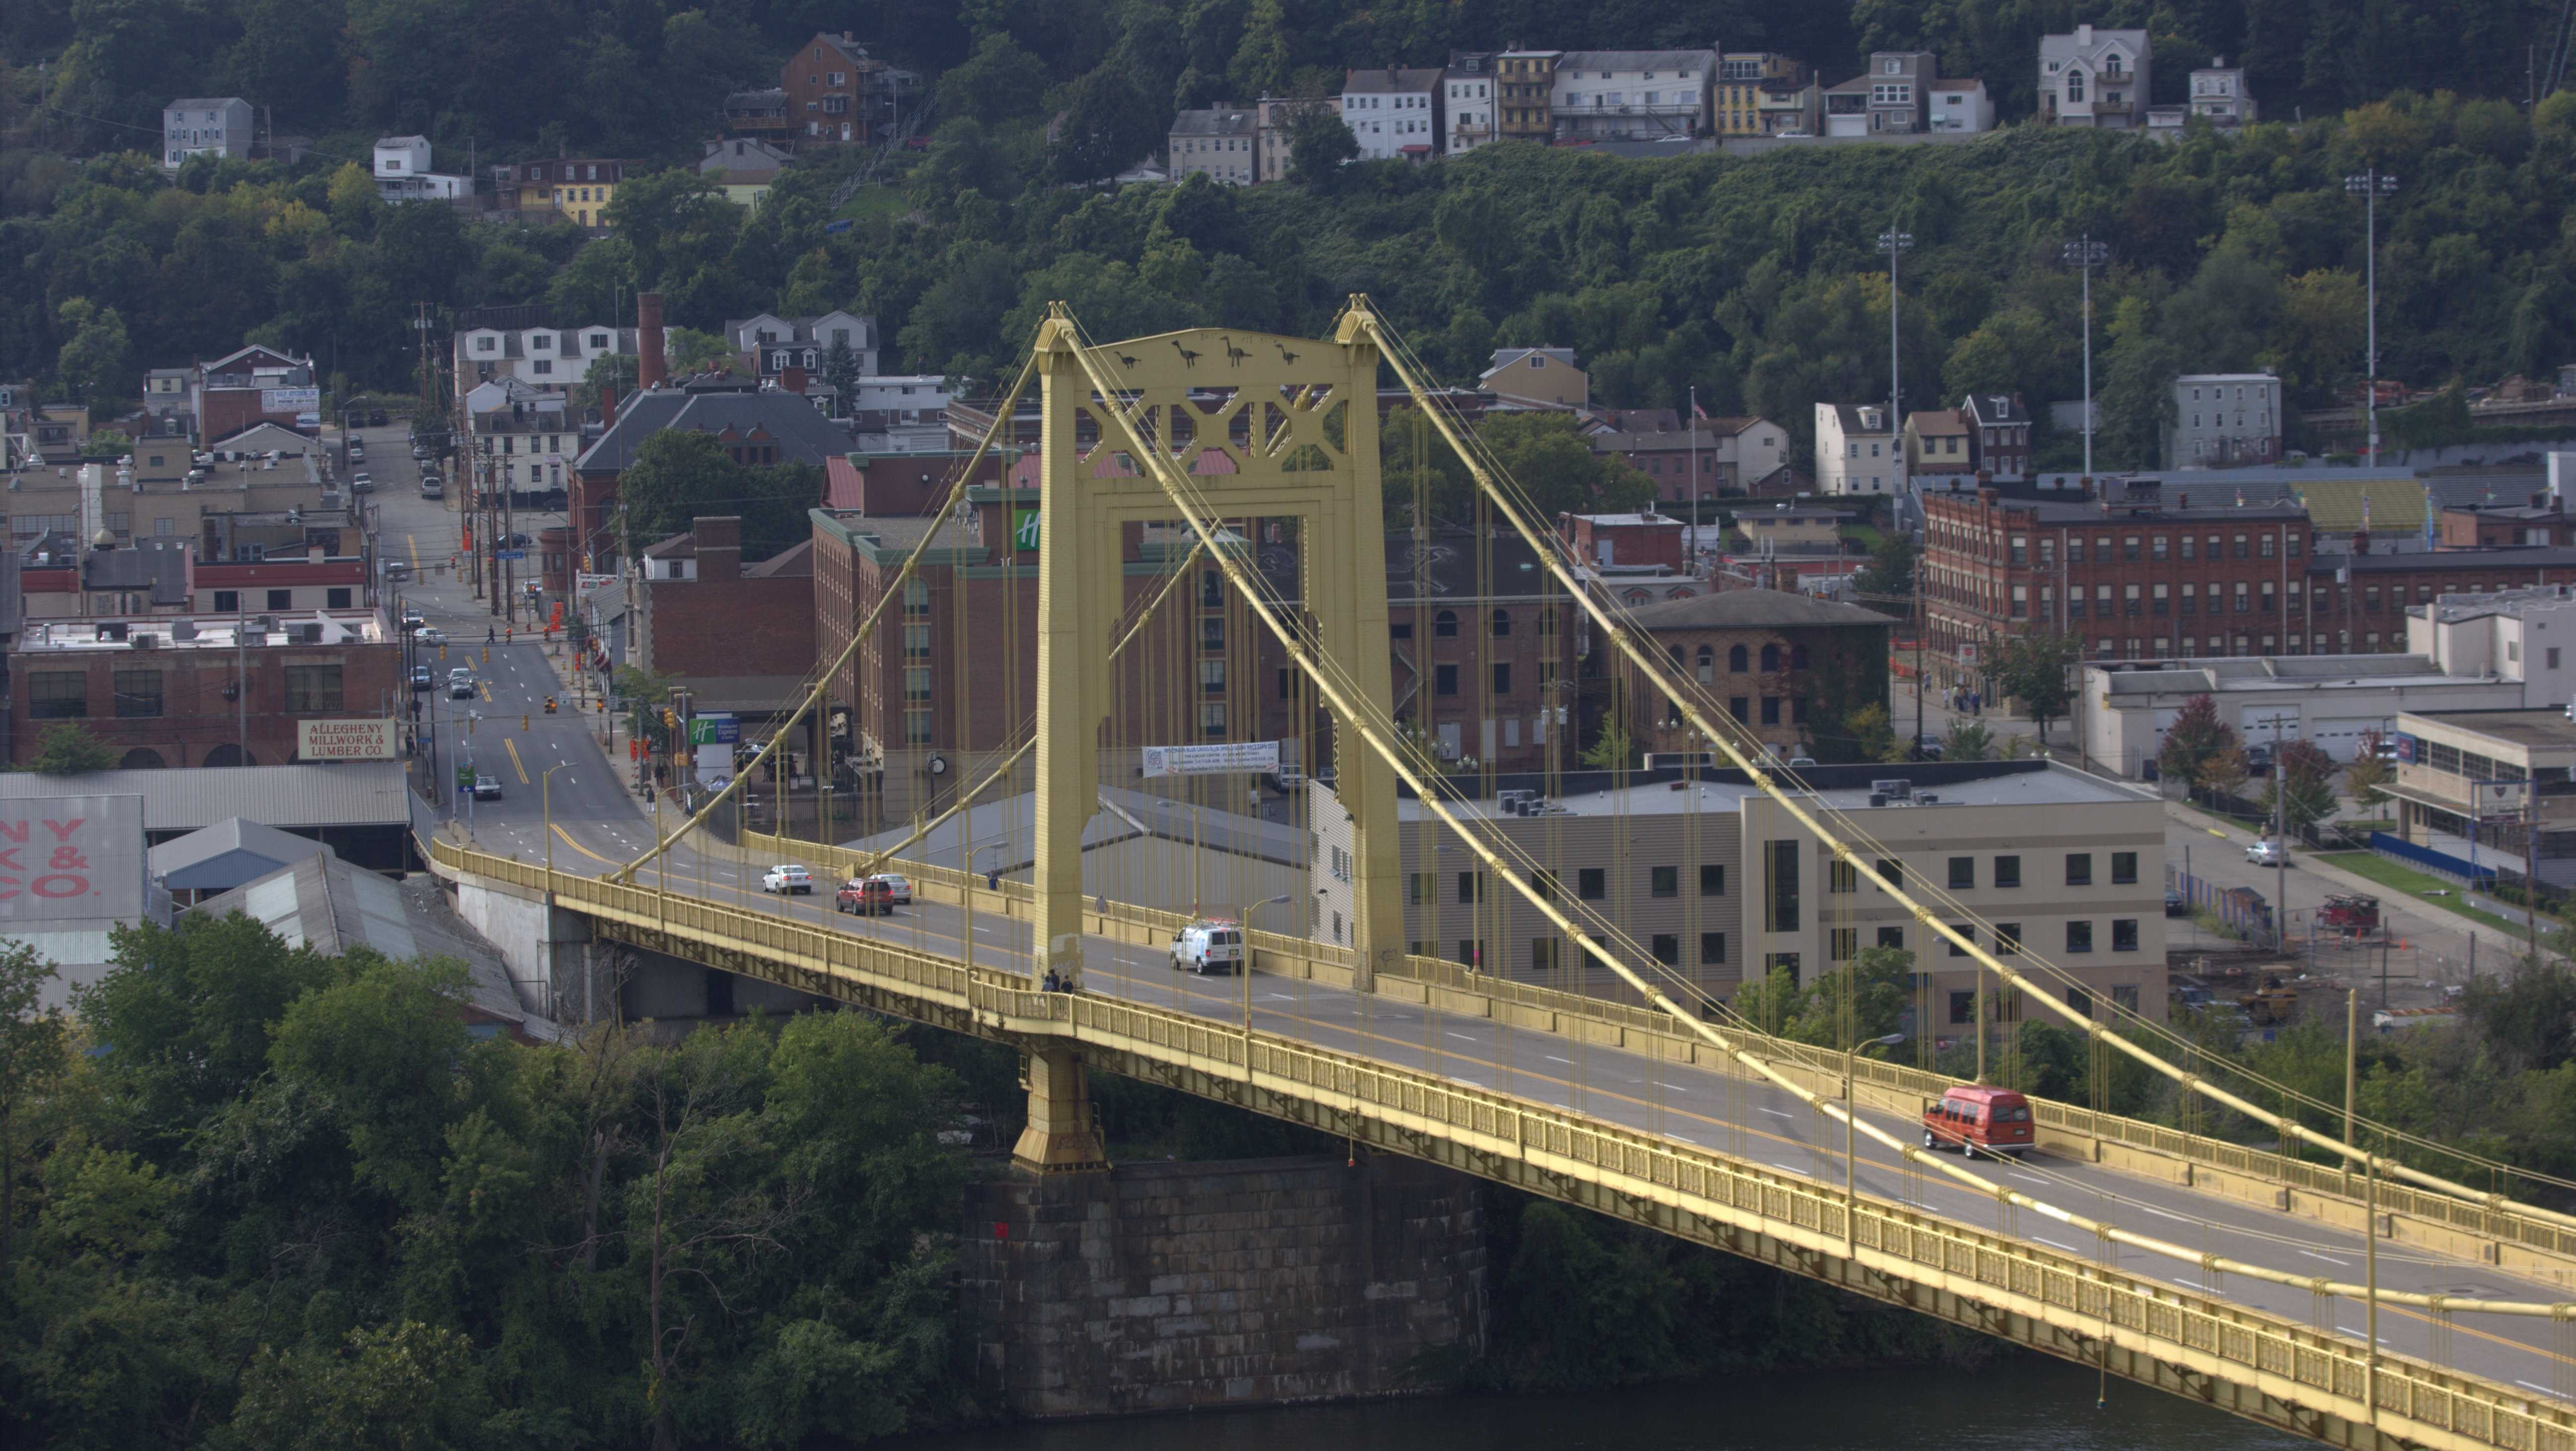 The South 10th Street Bridge (a.k.a. Philip Murray Bridge) on Pittsburgh's South Side